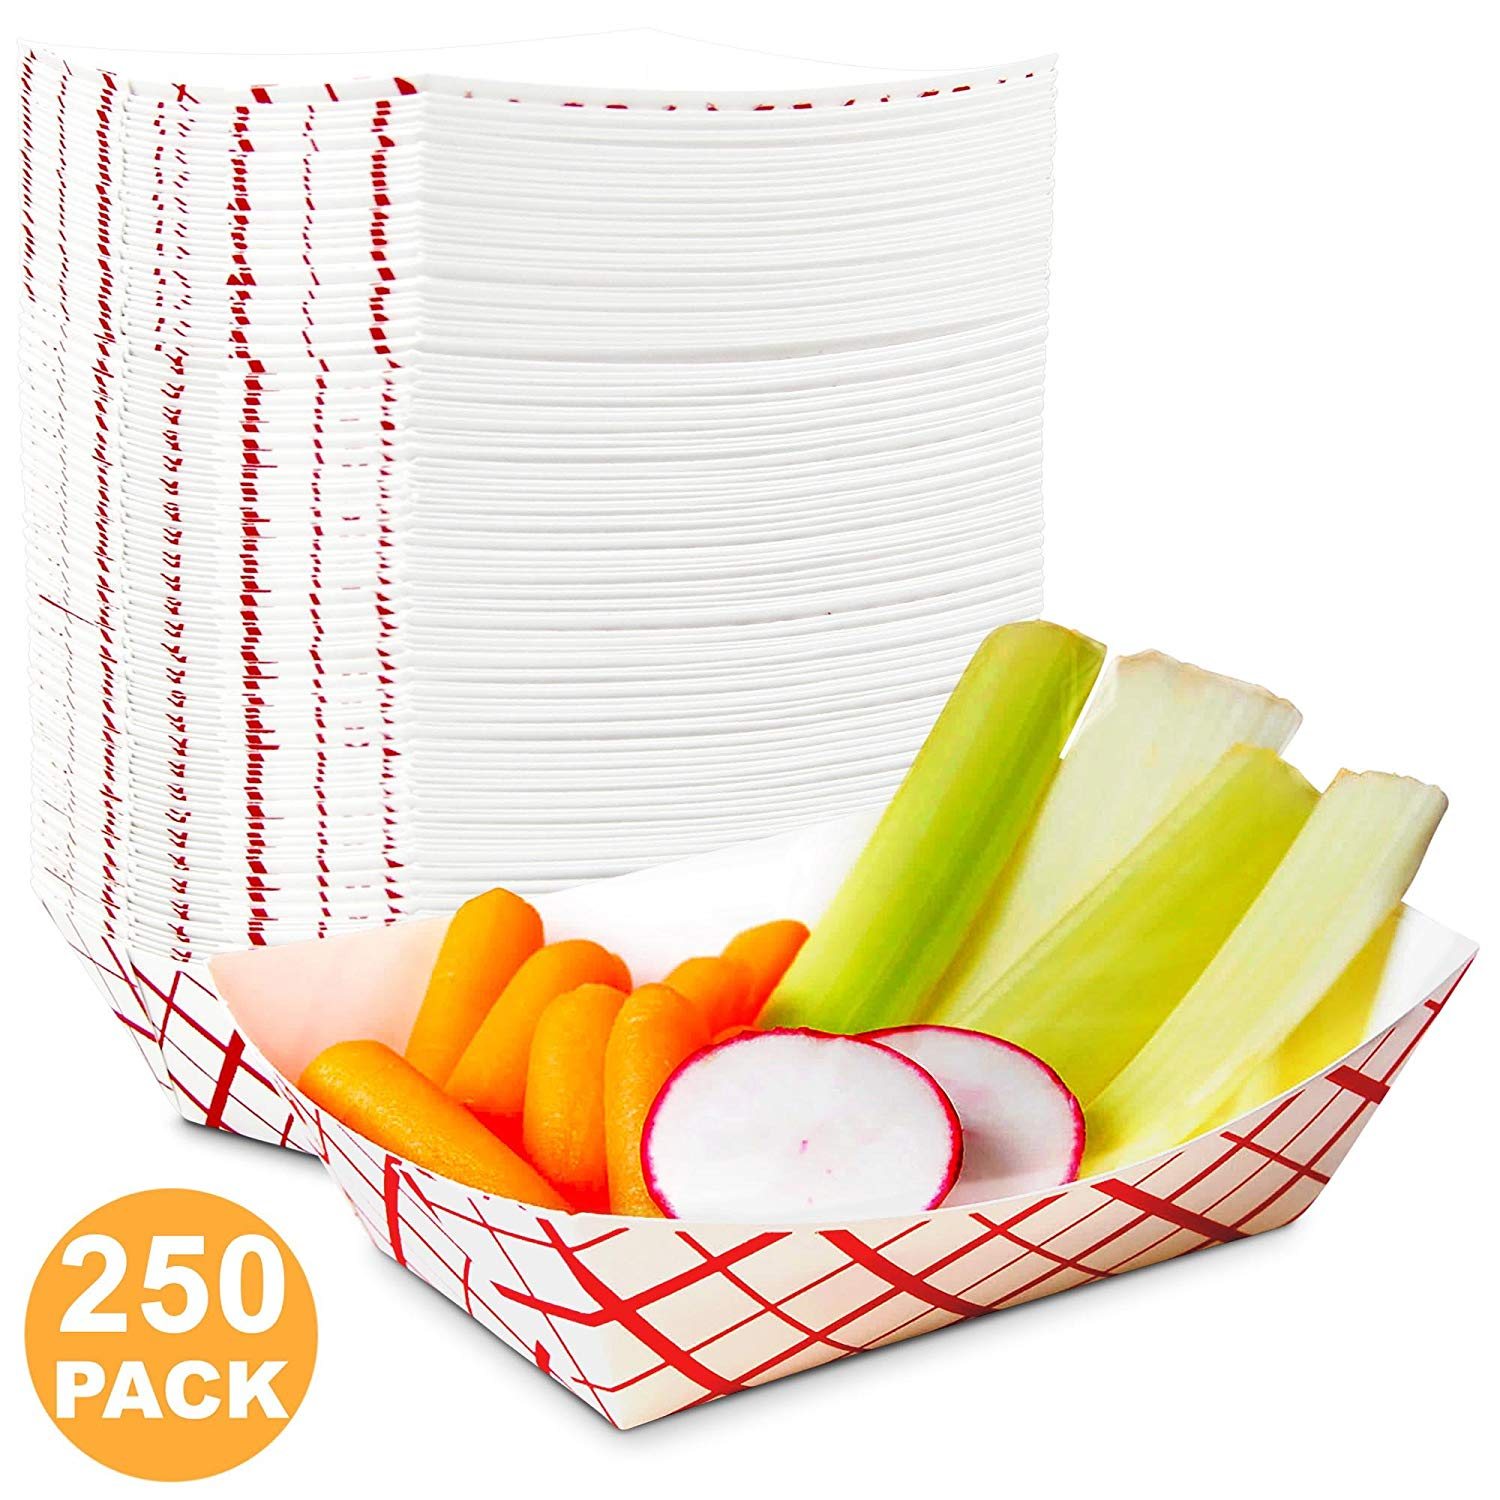 1 lb Heavy Duty Disposable Red Check Paper Food Trays Grease Resistant Fast Food Paperboard Boat Basket for Parties Fairs Picnics Carnivals, Holds Tacos Nachos Fries Hot Corn Dogs [250 Pack]